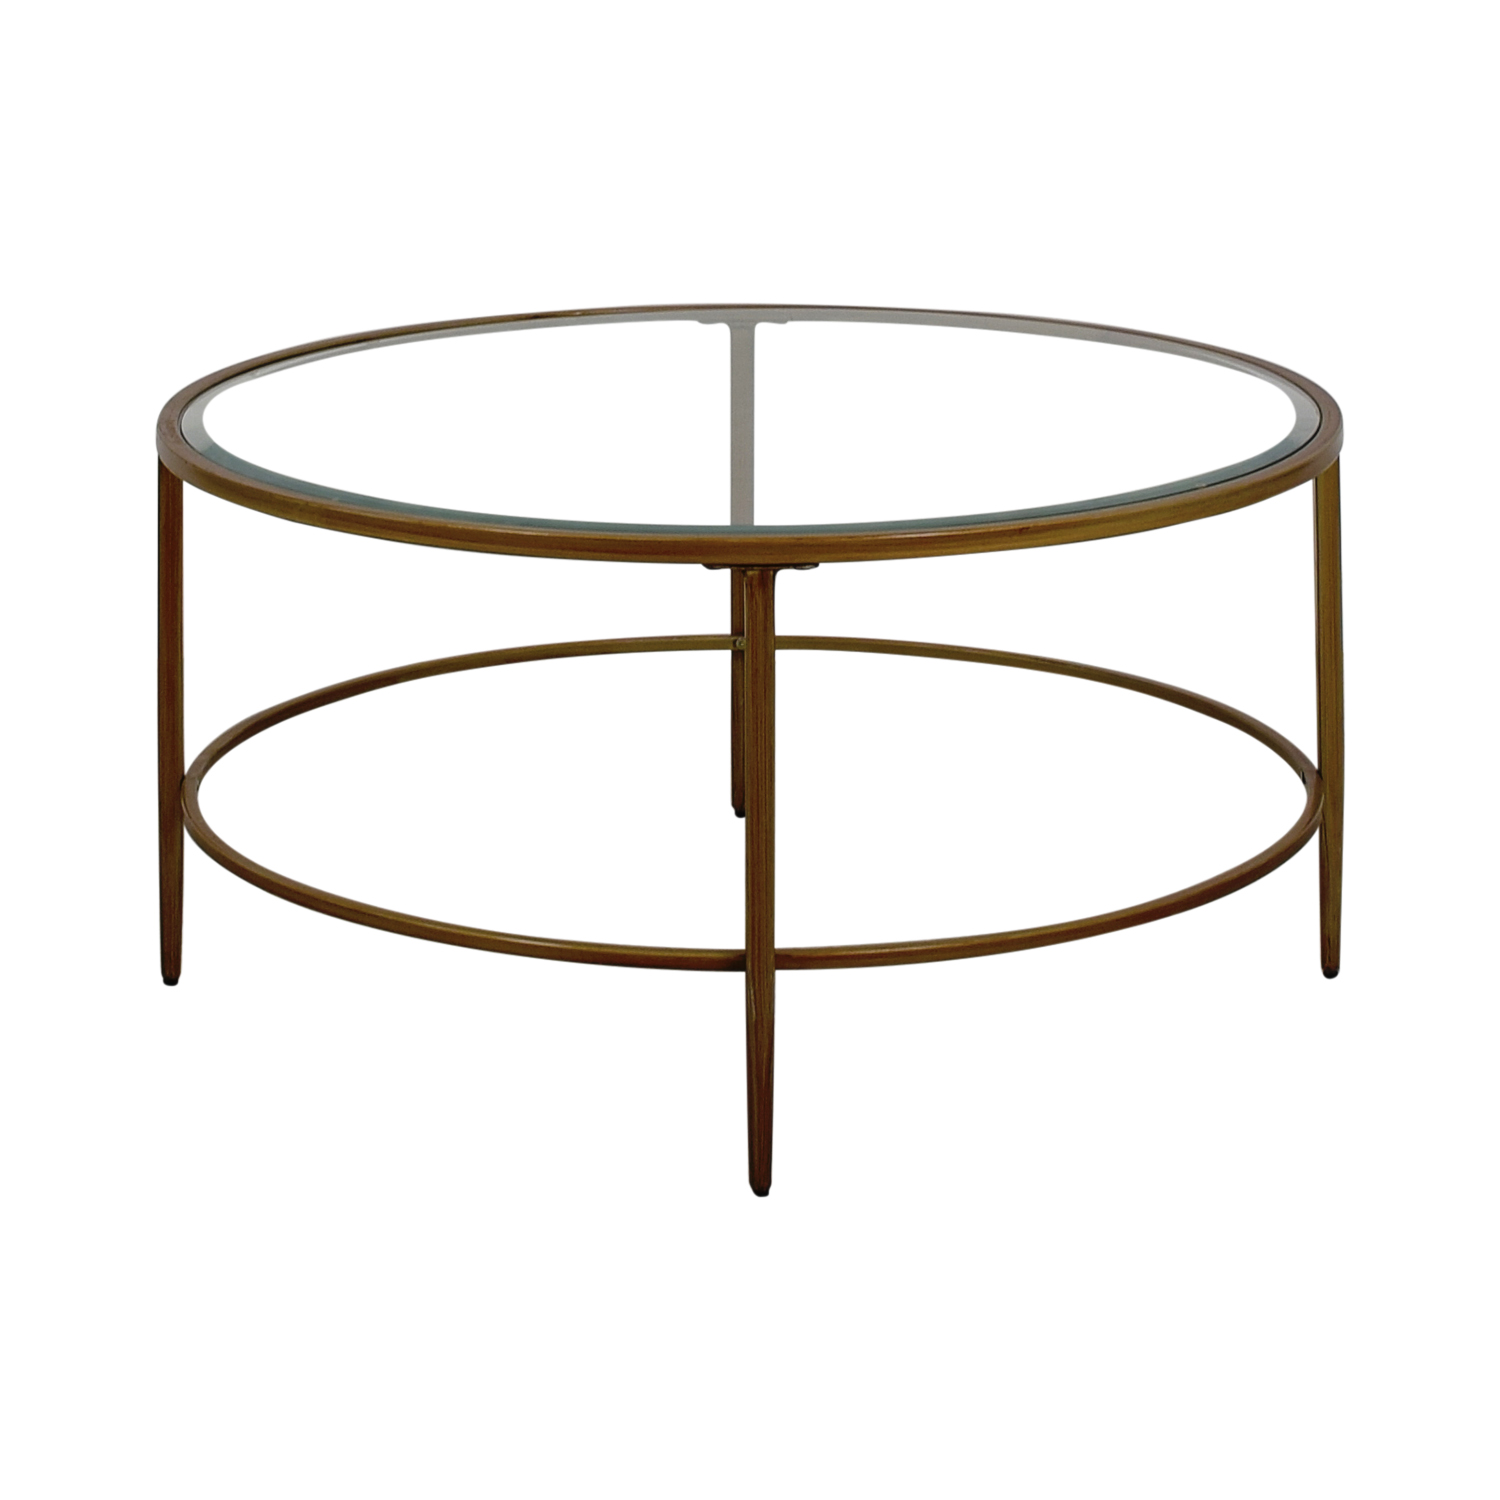 shop Birch Lane Birch Lane Round Glass Coffee table online